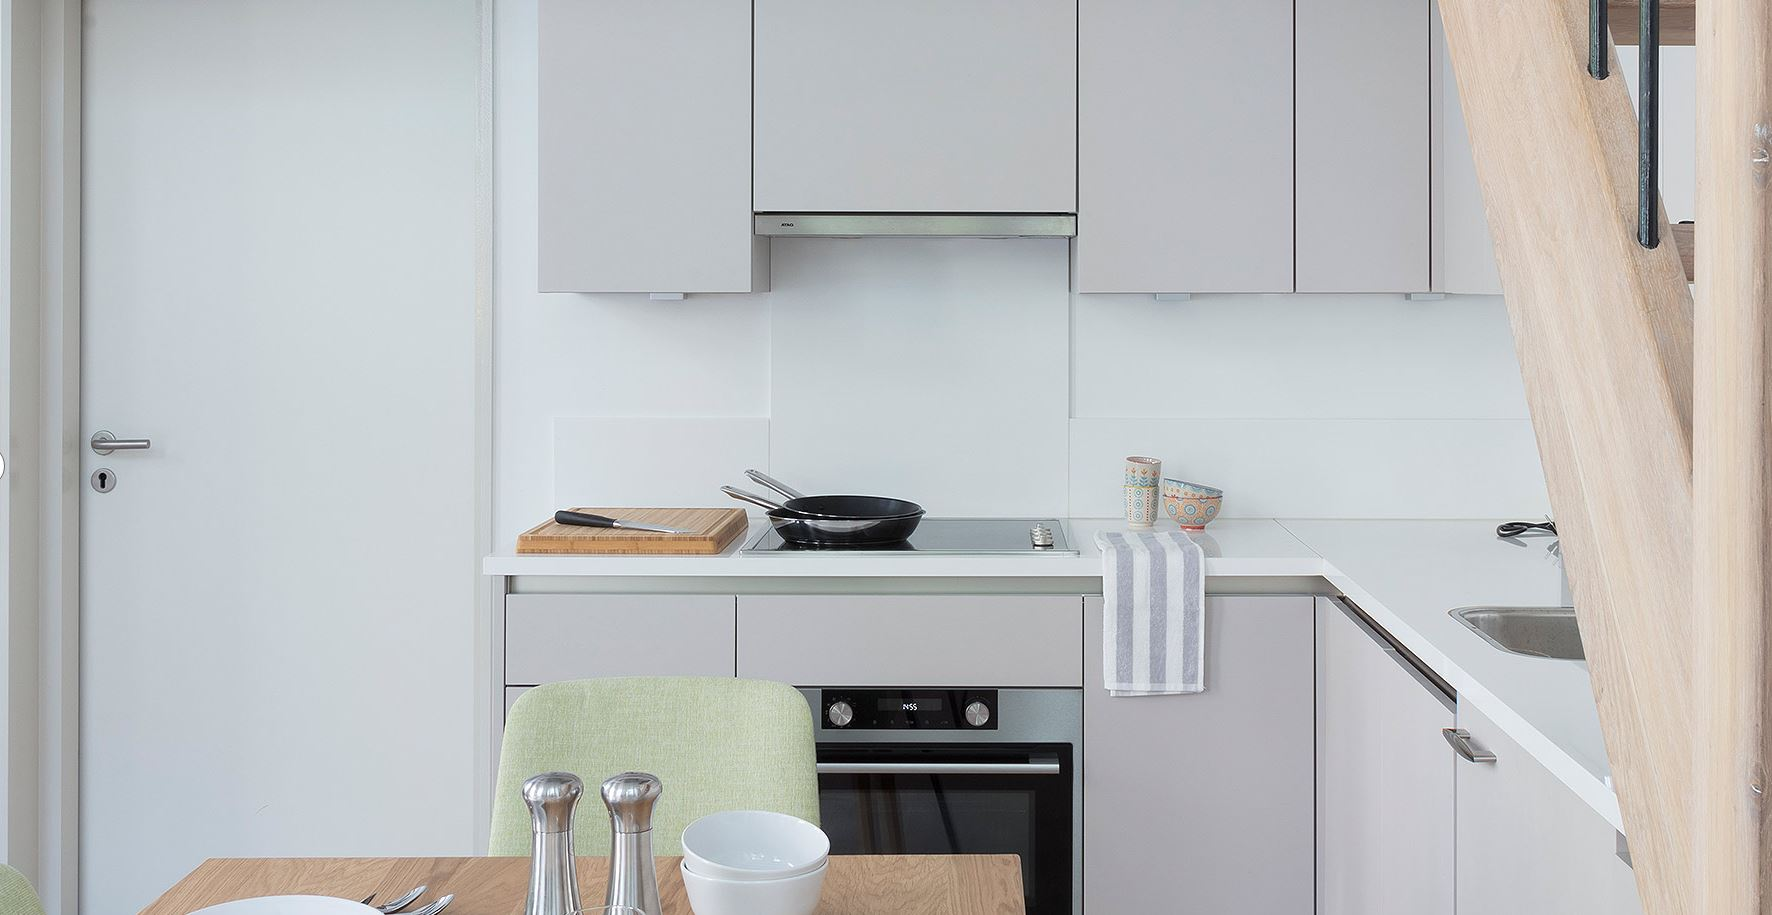 Fully equipped kitchen at The Wittenberg Apartments, Amsterdam